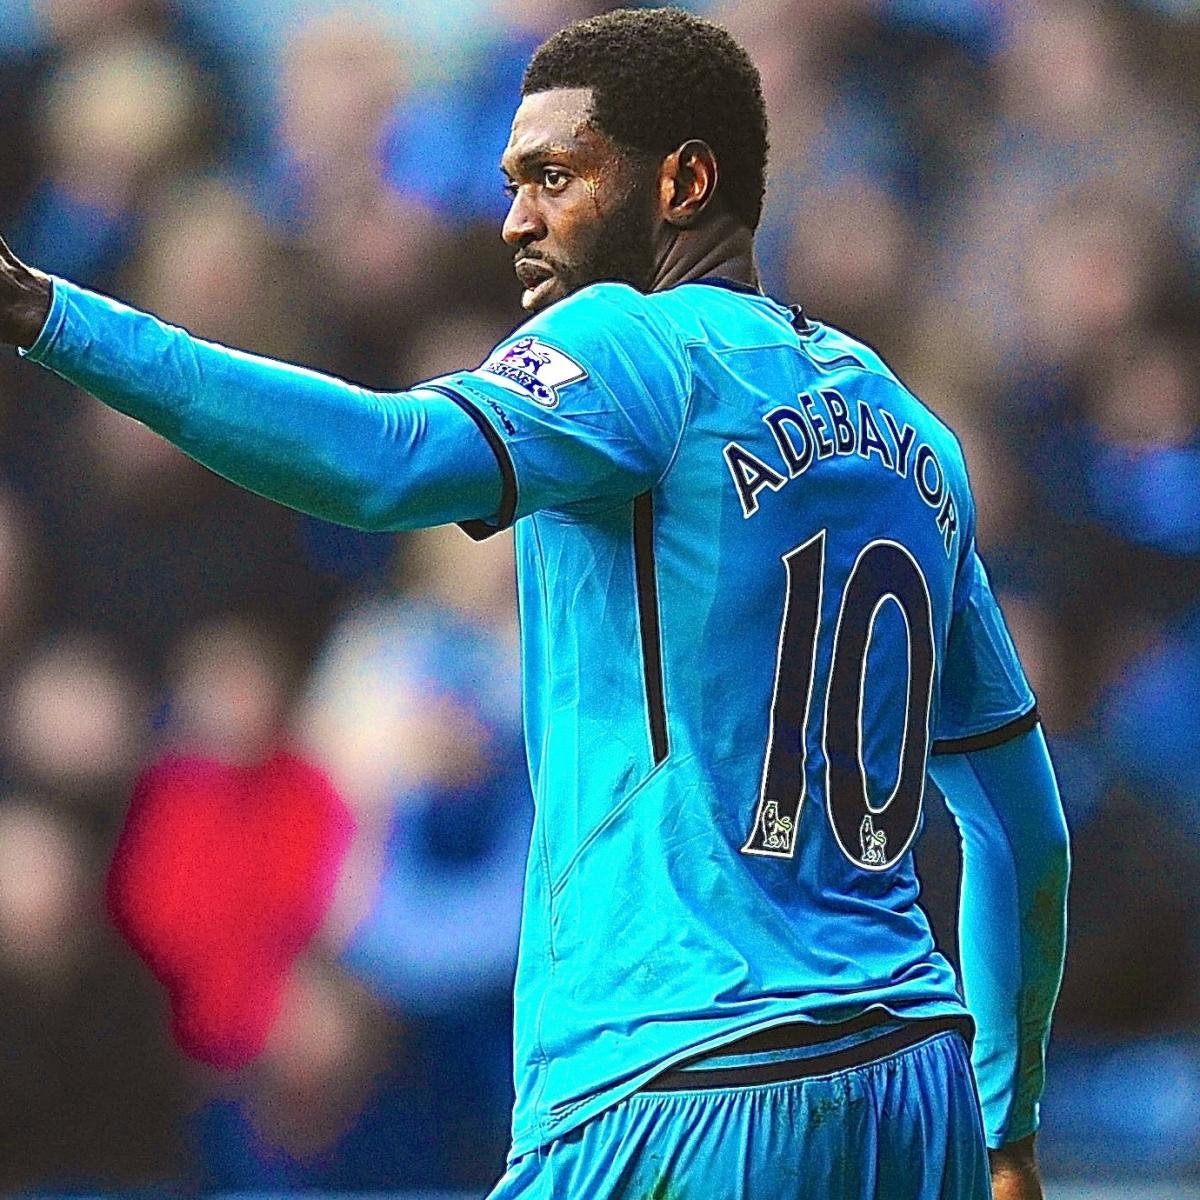 Who Will Lead The Attack For Tottenham In The Absence Of: Emmanuel Adebayor, Christian Eriksen Lead As Spurs' Form